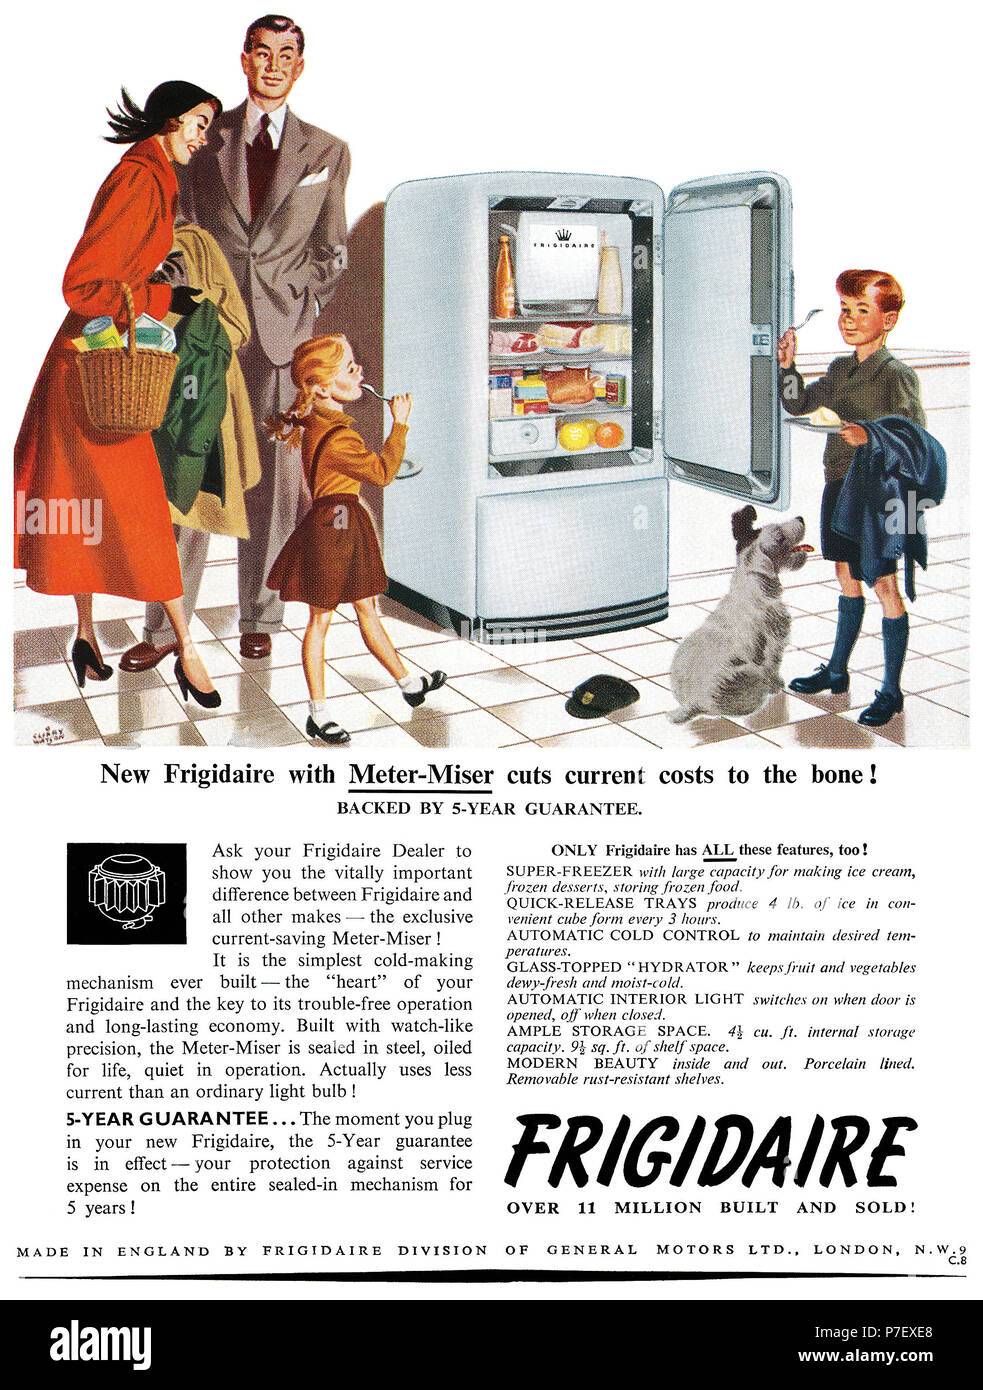 1950 British advertisement for Frigidaire, illustrated by Charles 'Clixby' Watson. - Stock Image